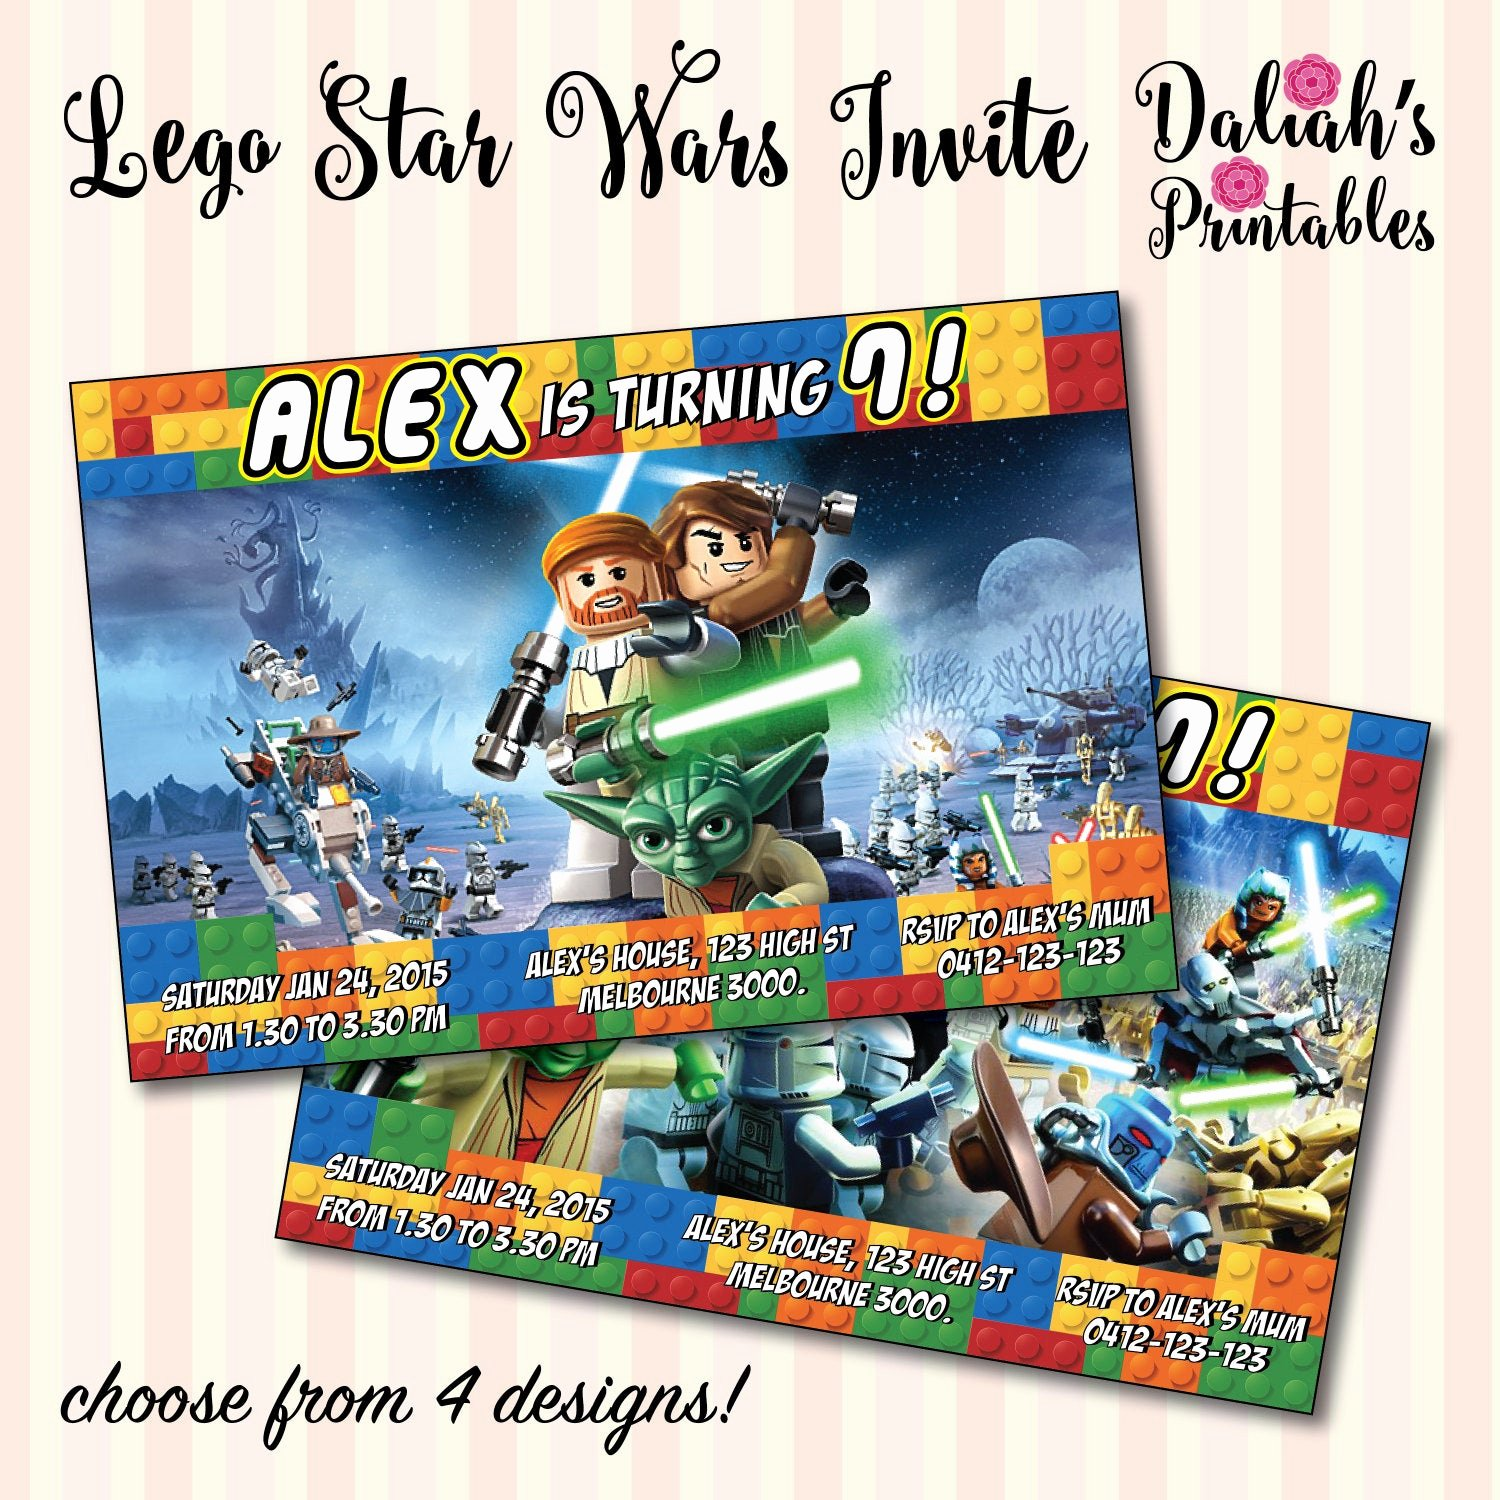 Lego Star Wars Party Invites Beautiful Lego Star Wars Invitation Choose From 4 by Daliahsprintables